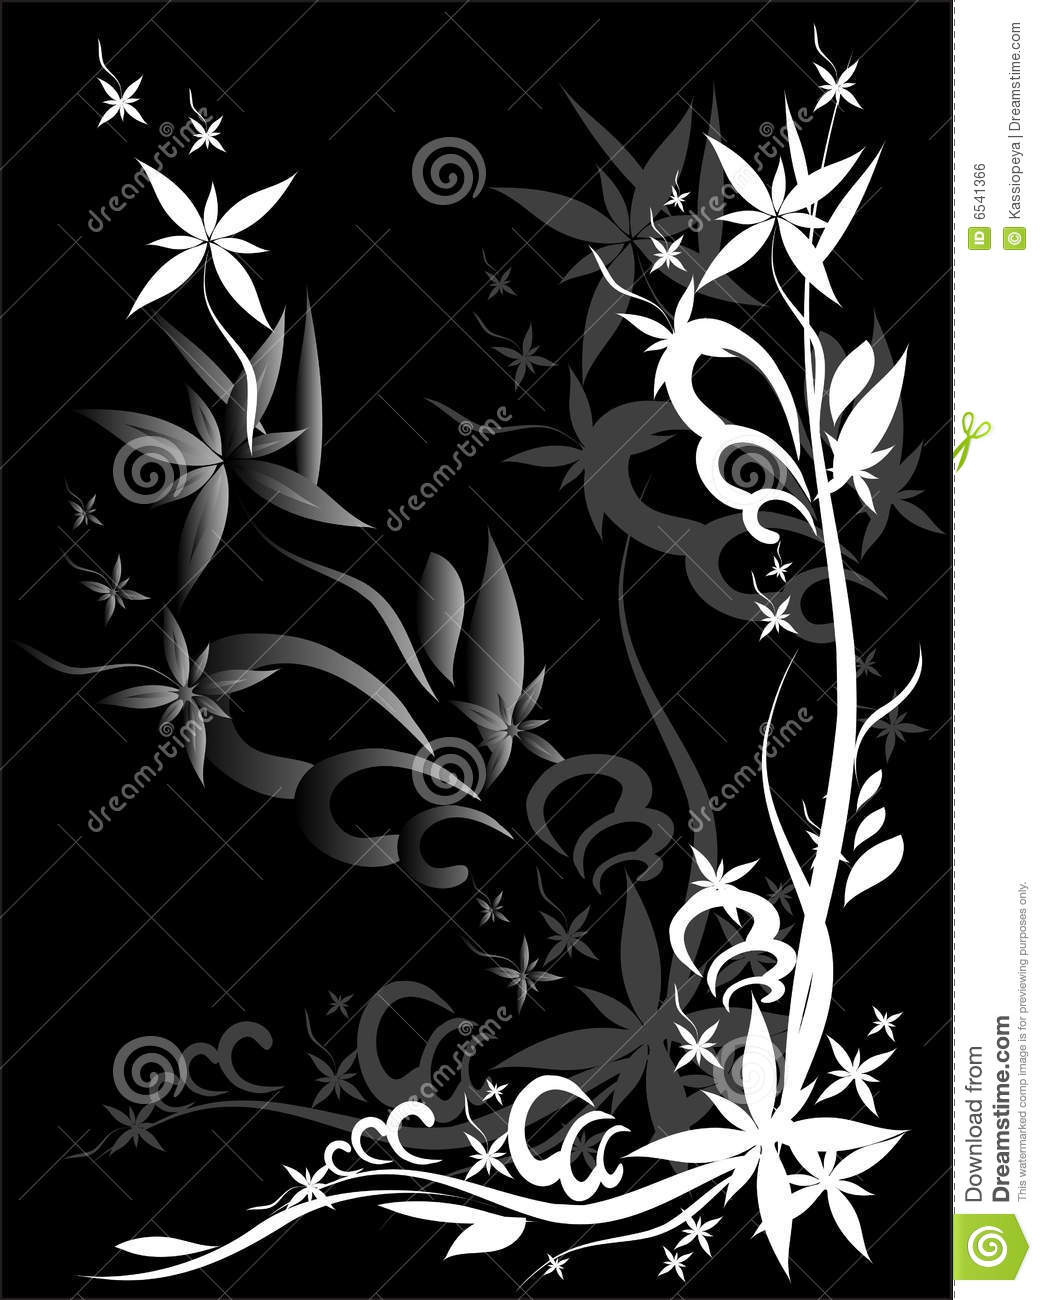 dessin noir de fleur image libre de droits image 6541366. Black Bedroom Furniture Sets. Home Design Ideas